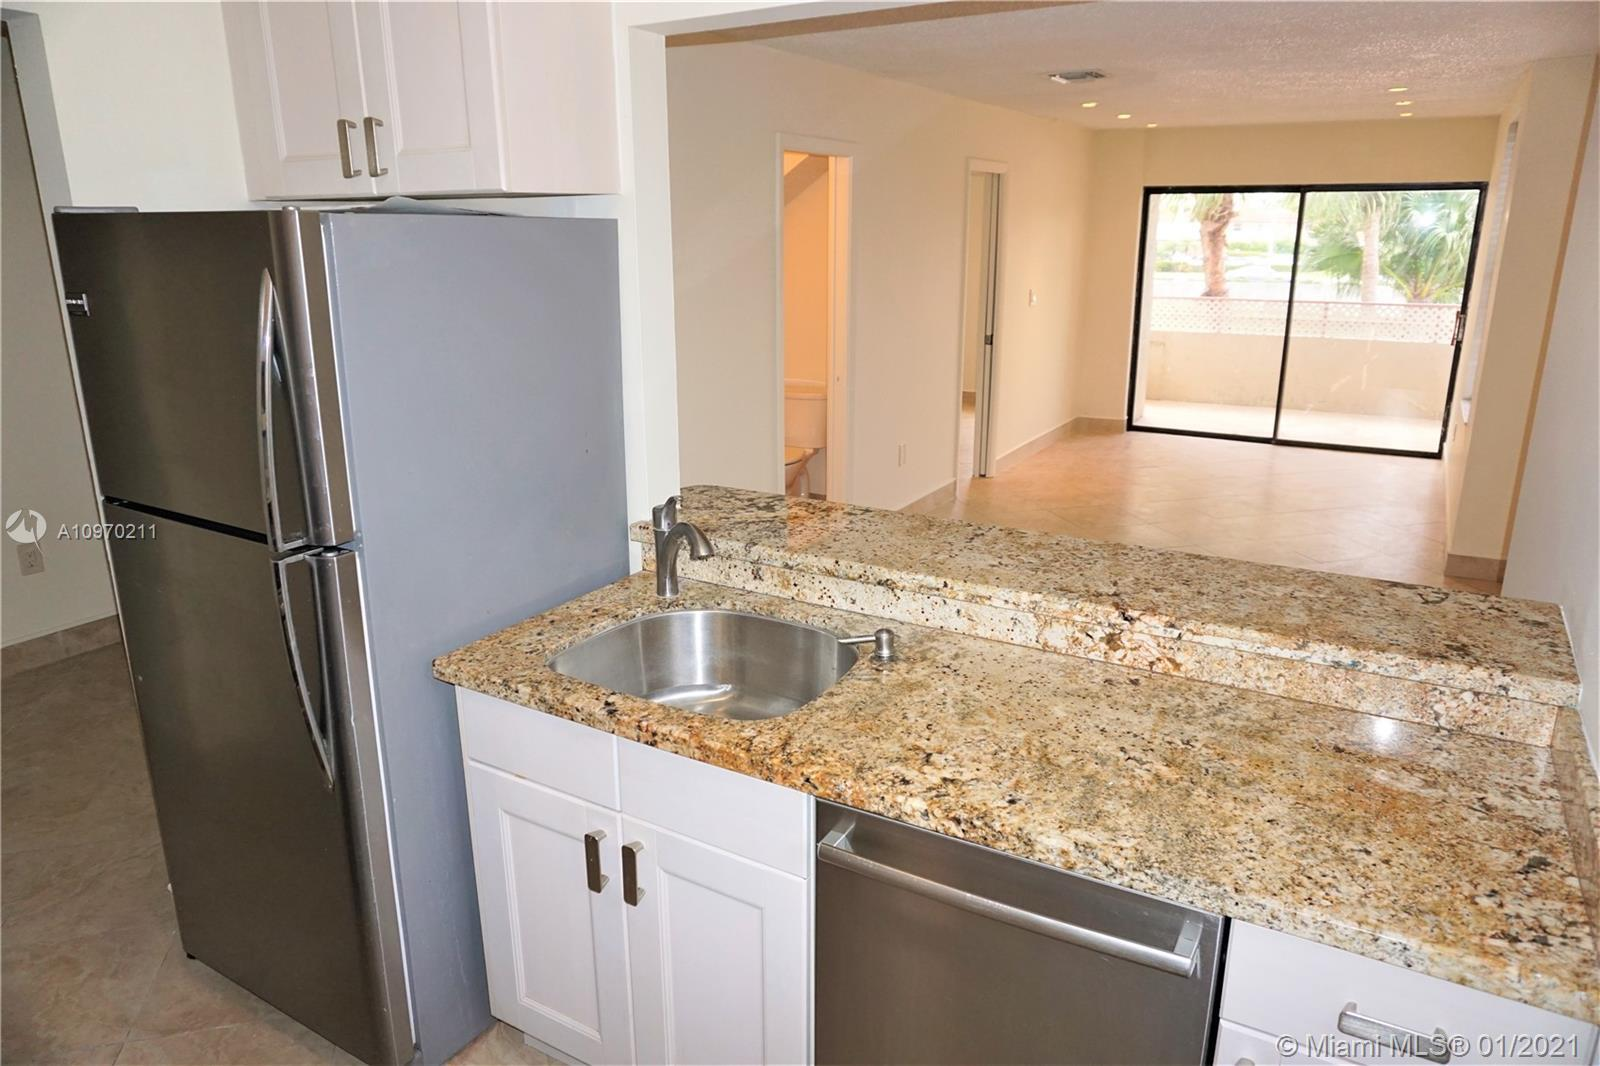 Remodeled Townhome in Miami  Springs! Features 2 bedrooms, 2 baths, den, Living room, dining room, half bath on the main floor and 2 bedrooms/2 baths upstairs.  Unit entry is on the second floor, Bedrooms are on the third floor. Building doesn't have an elevator.  Credit/background check and income verification are required. No pets allowed.